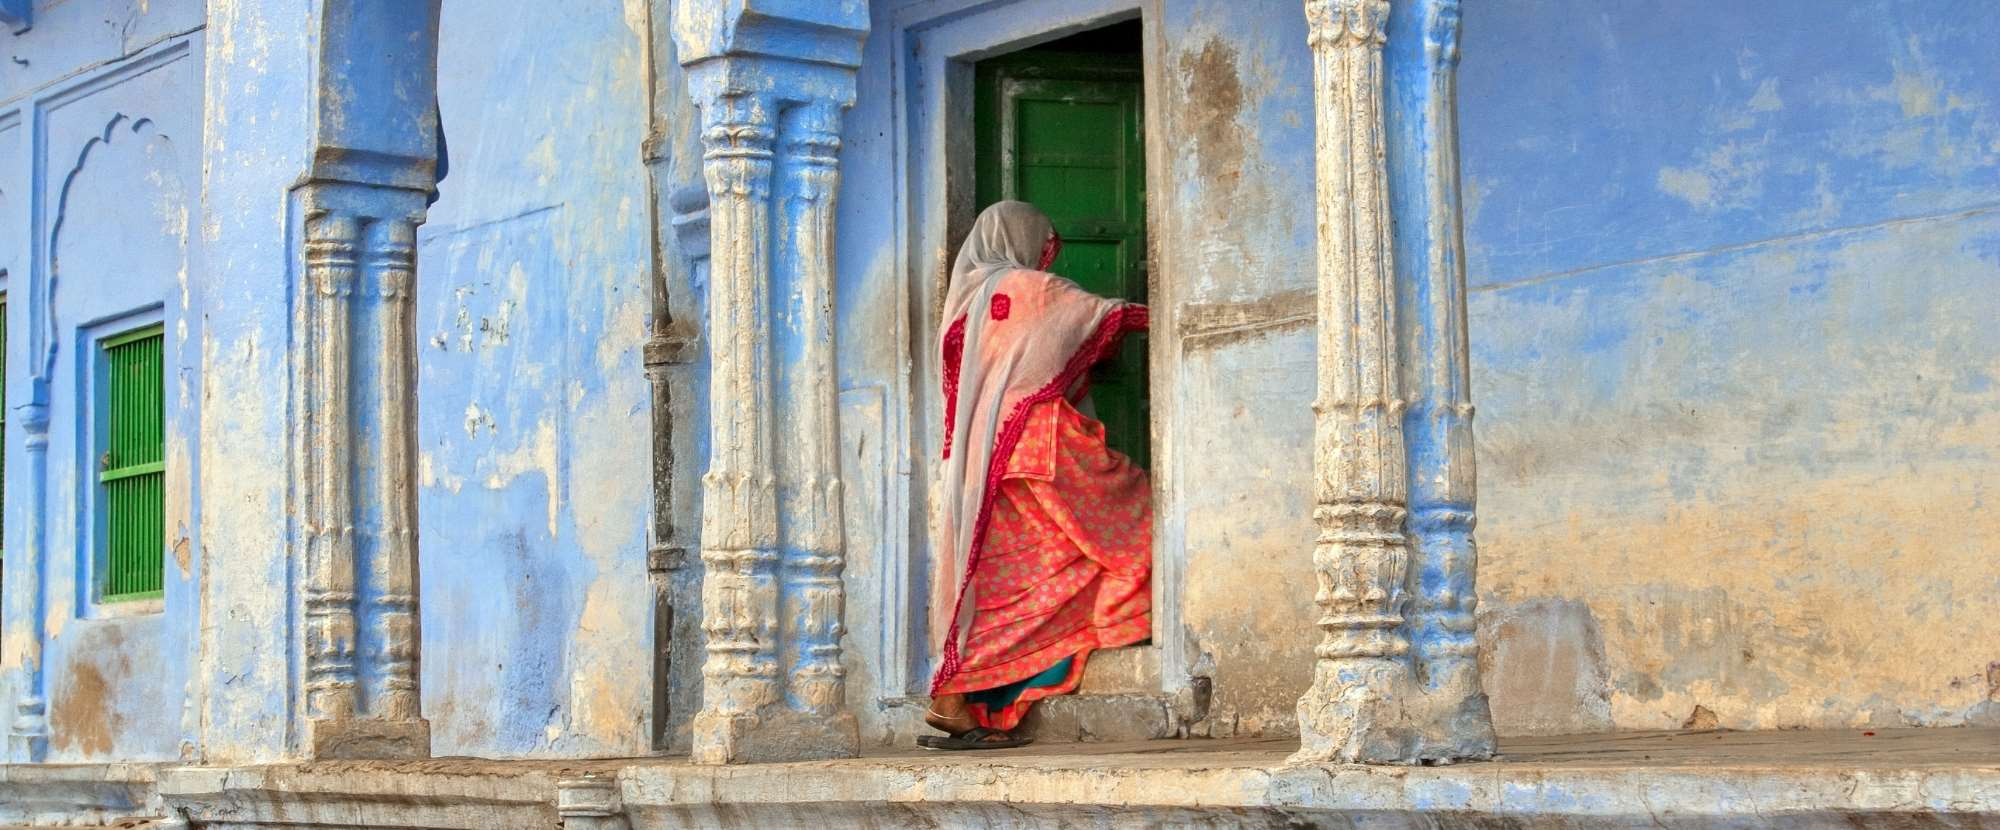 The Top 21 Things to Do in Rajasthan